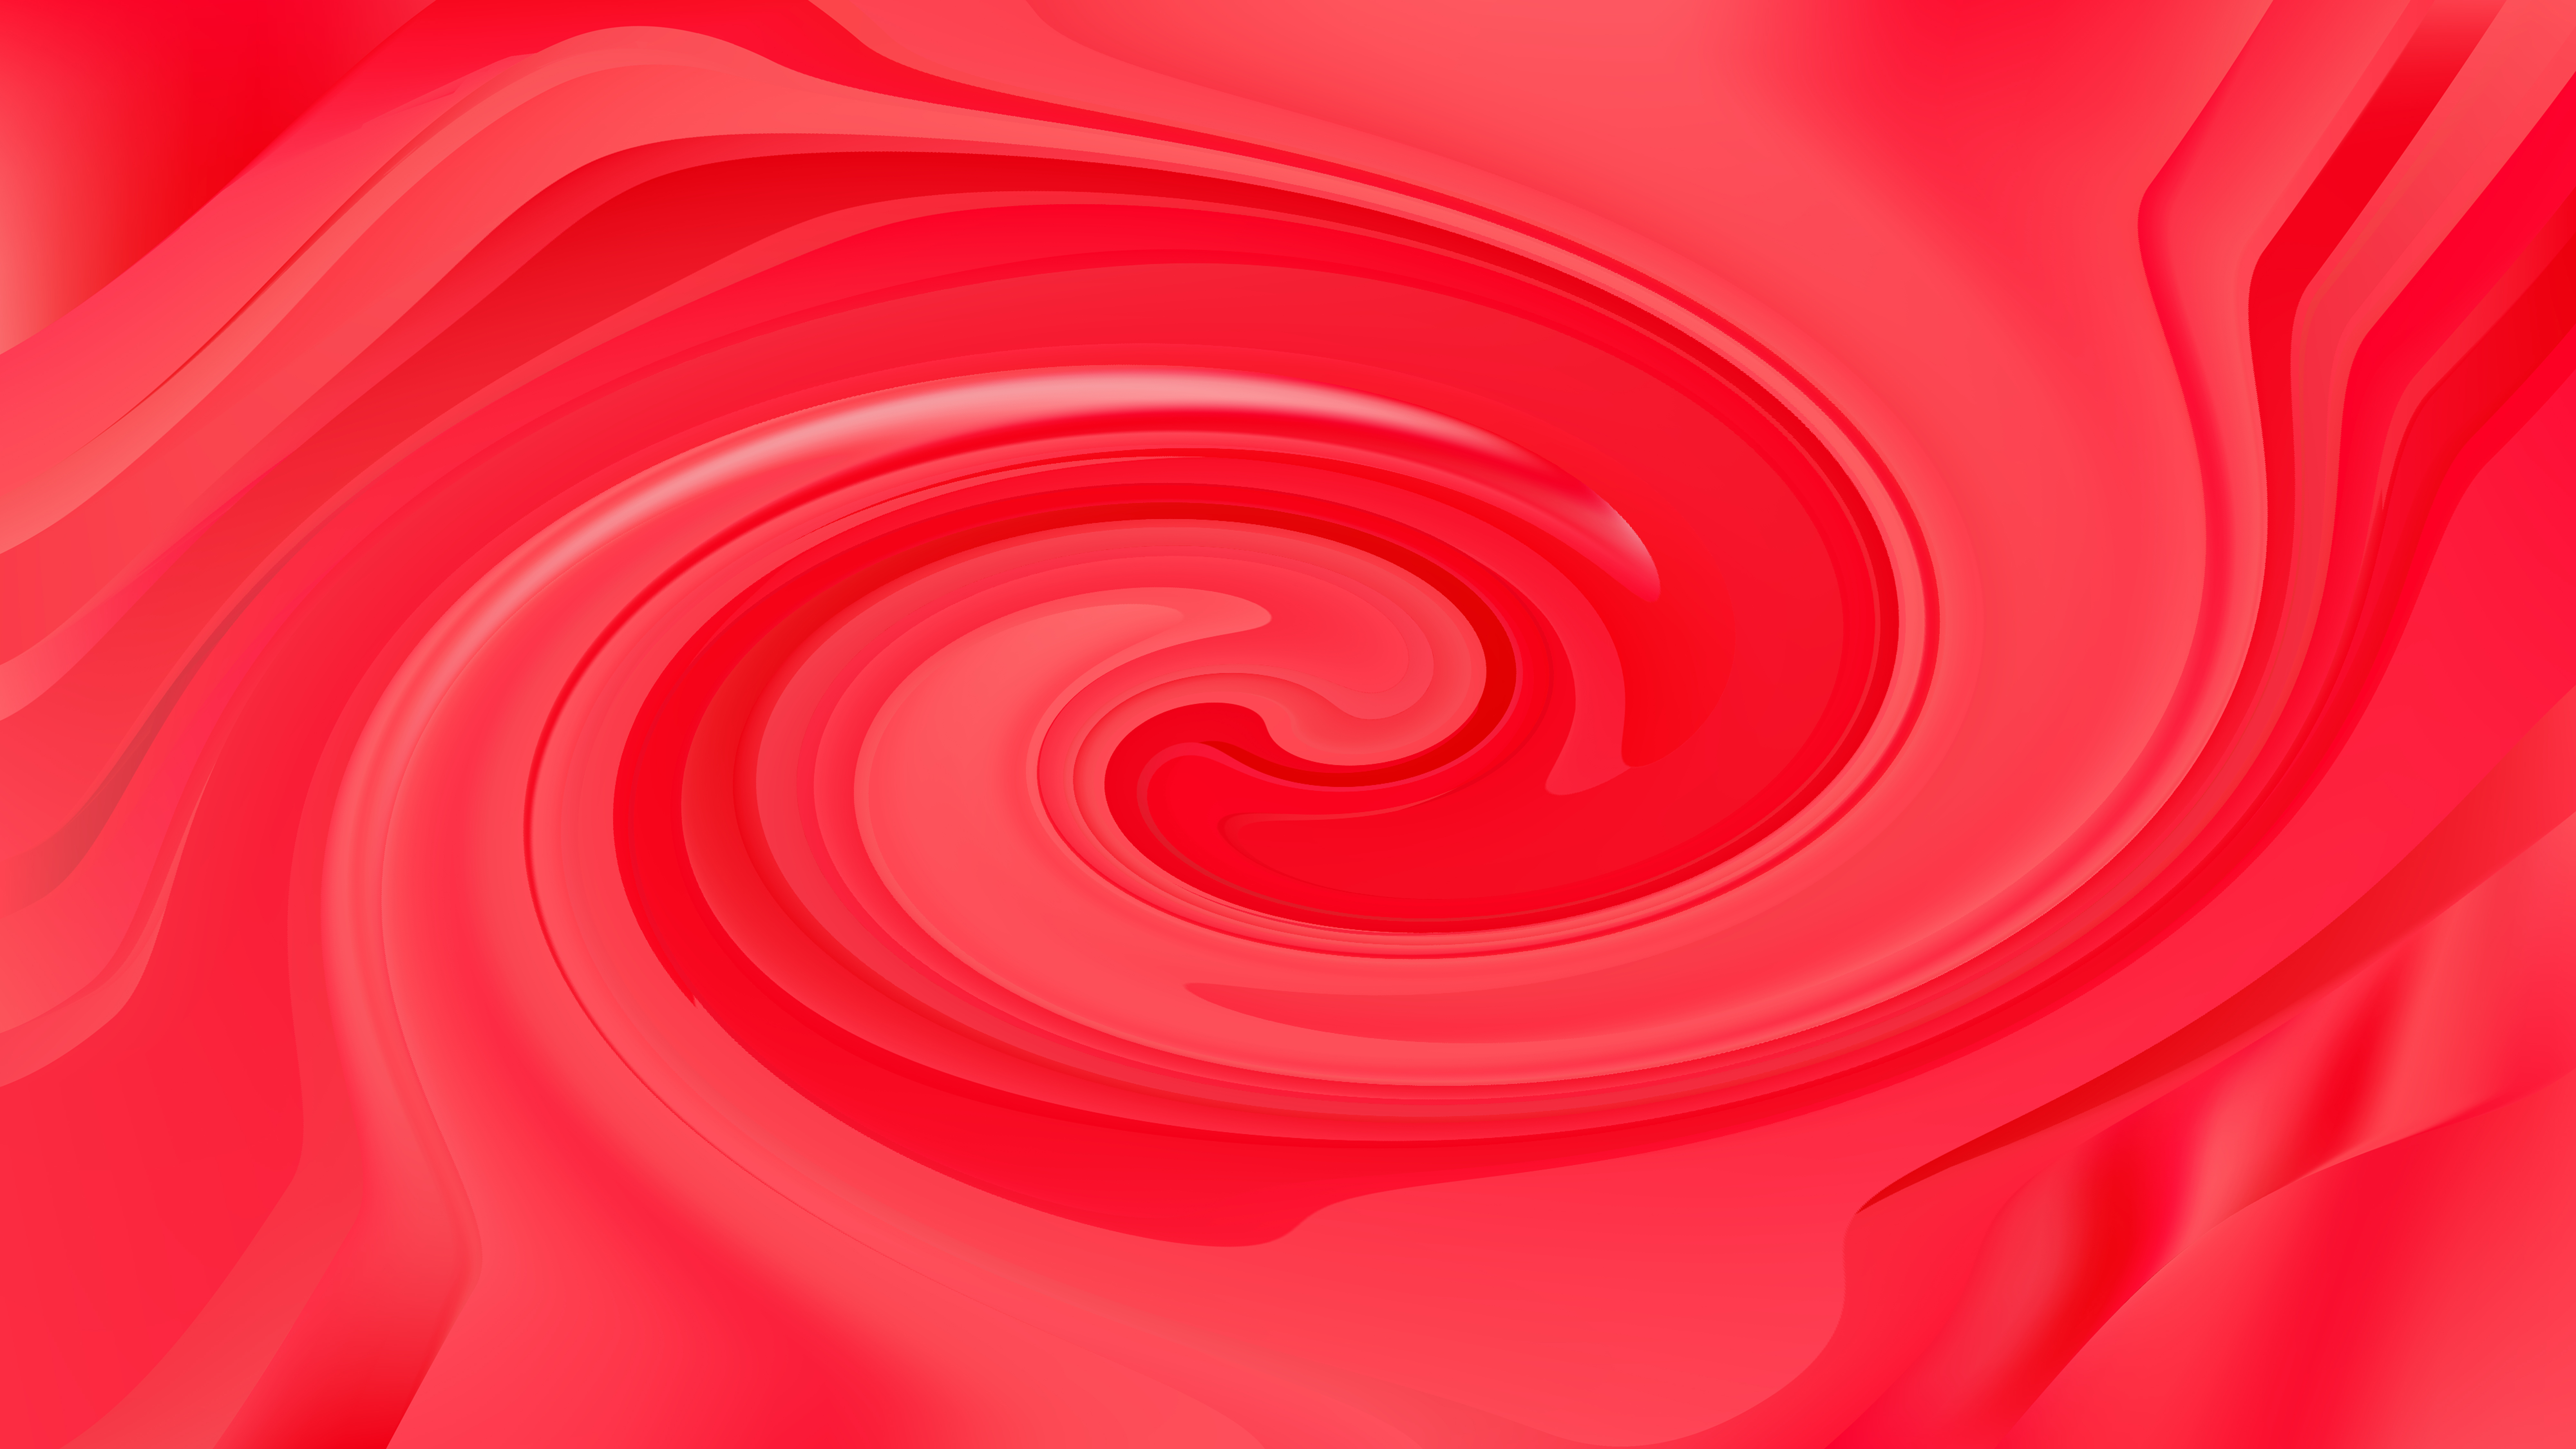 Red Whirl Background